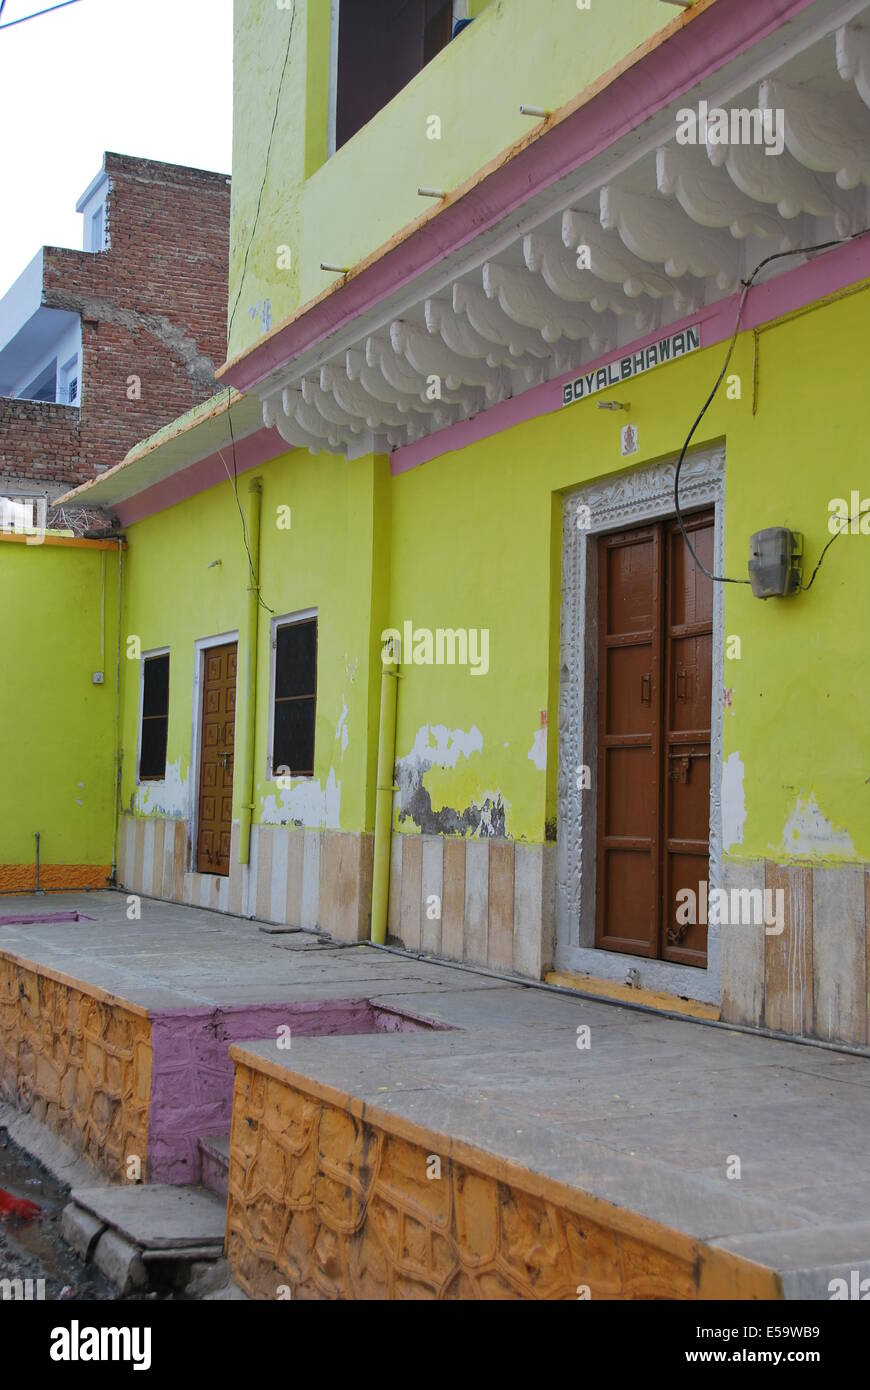 India Rajasthan Modern Village House Painted Lime Green